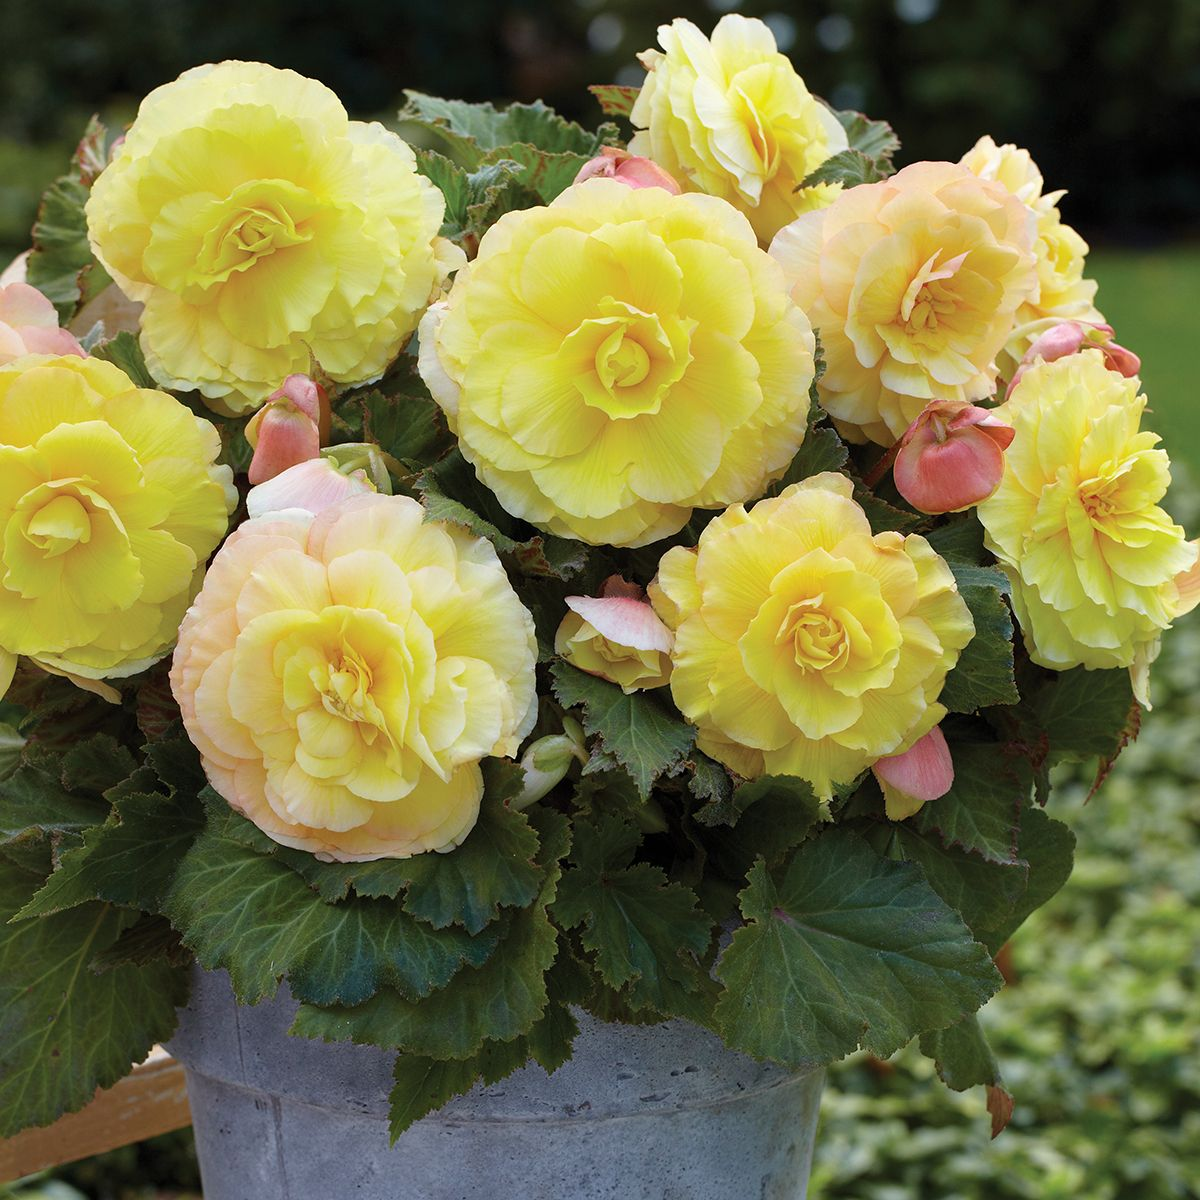 Begonia Strawberries And Cream Ngb Member Van Zyverden Inc Begonia Strawberries And Cream Produces Full Flowers Perennials Beautiful Flowers Pretty Flowers